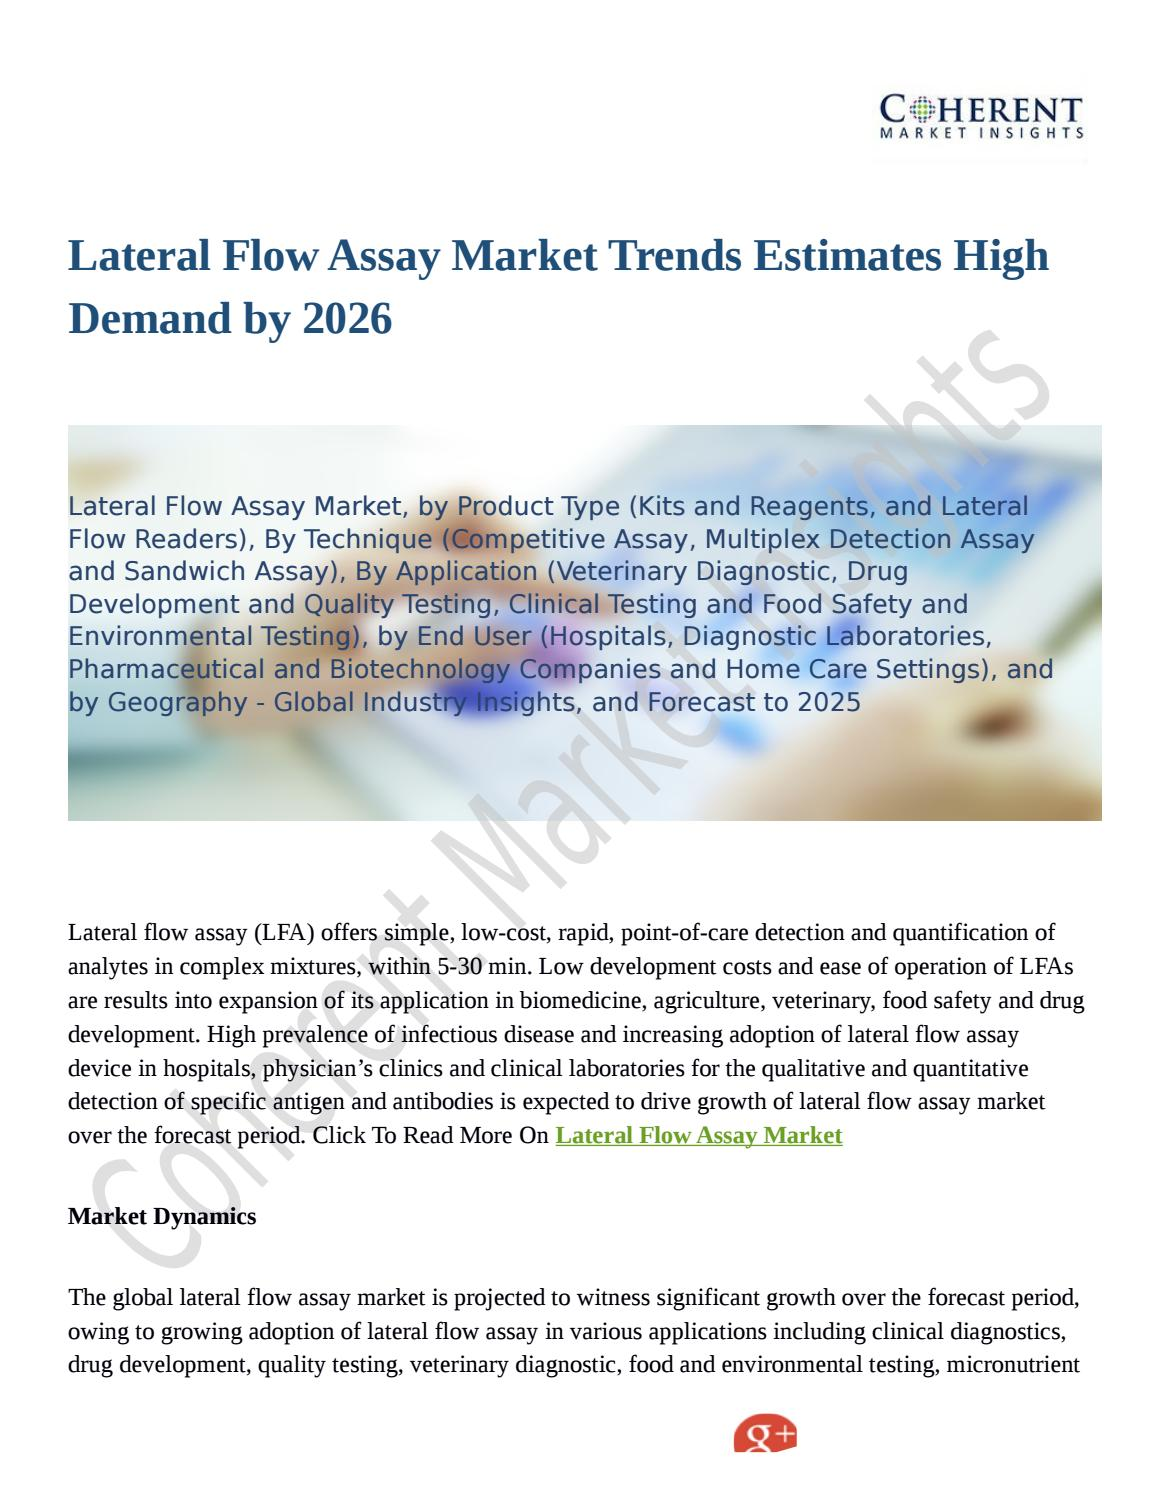 Lateral Flow Assay Market Trends Estimates High Demand by